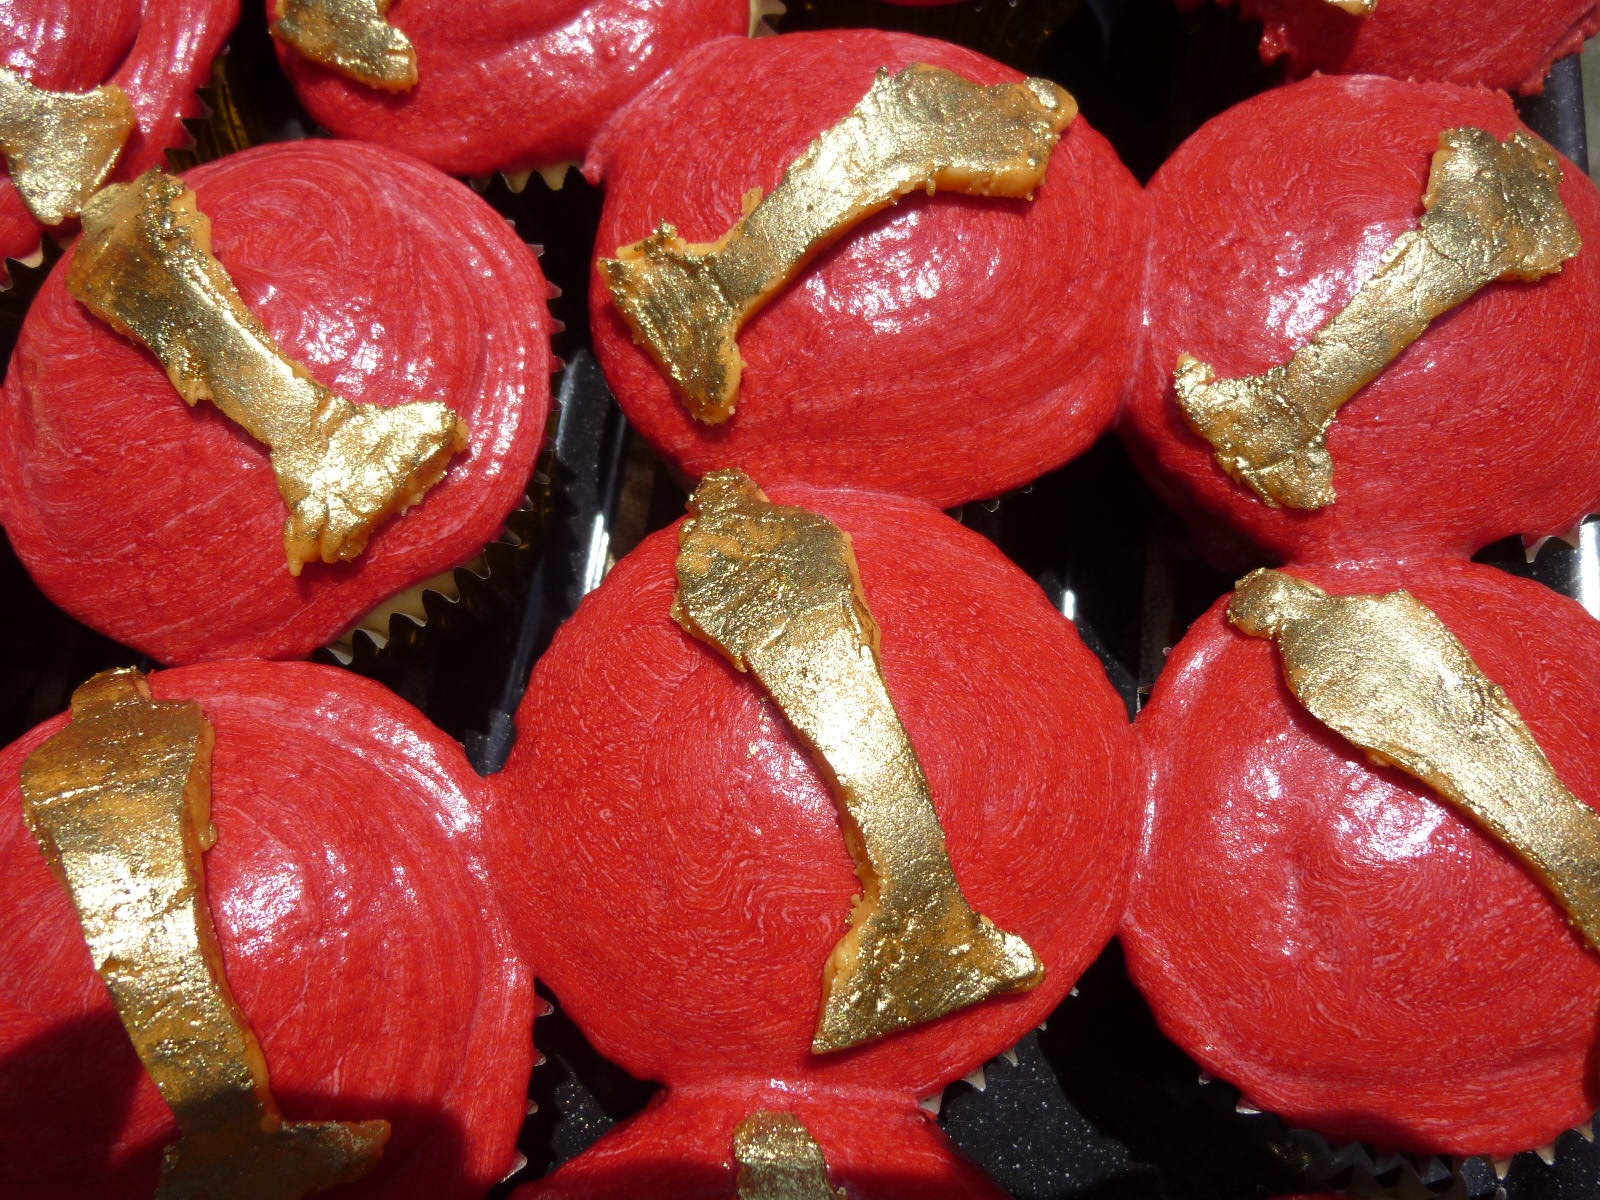 Chocolate Oscar Party Favors additionally Oscar Cupcakes And Hollywood Walk Of additionally Oscar Cupcakes And Hollywood Walk Of furthermore Oscar Award Cookies together with Hollywood Red Carpet Theme. on oscar award party cupcakes and cookies